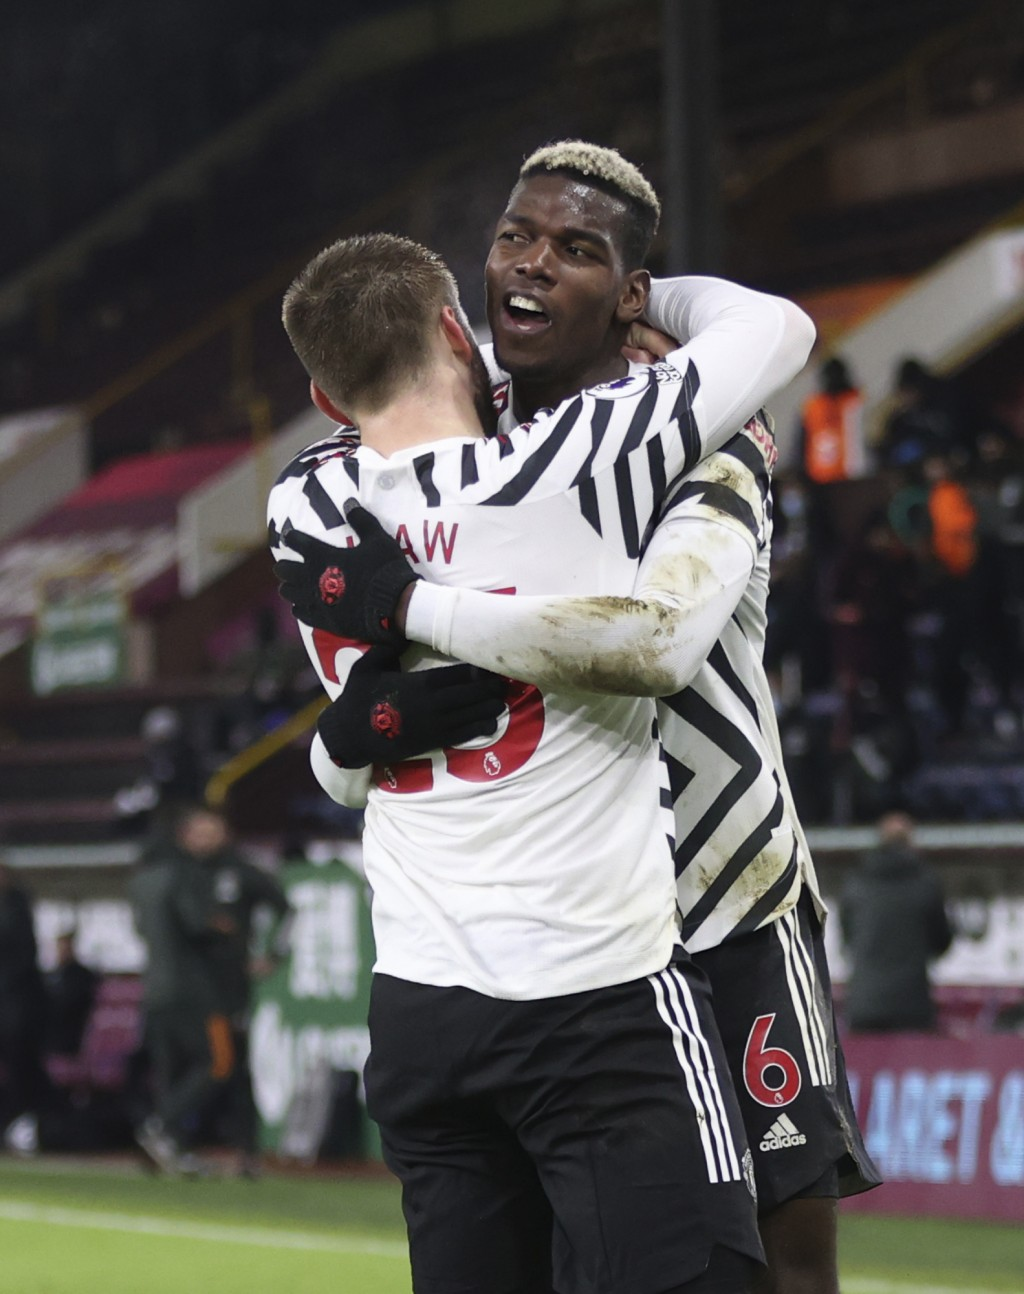 Manchester United's Paul Pogba celebrates after scoring during the English Premier League soccer match between Burnley and Manchester United in Burnle...